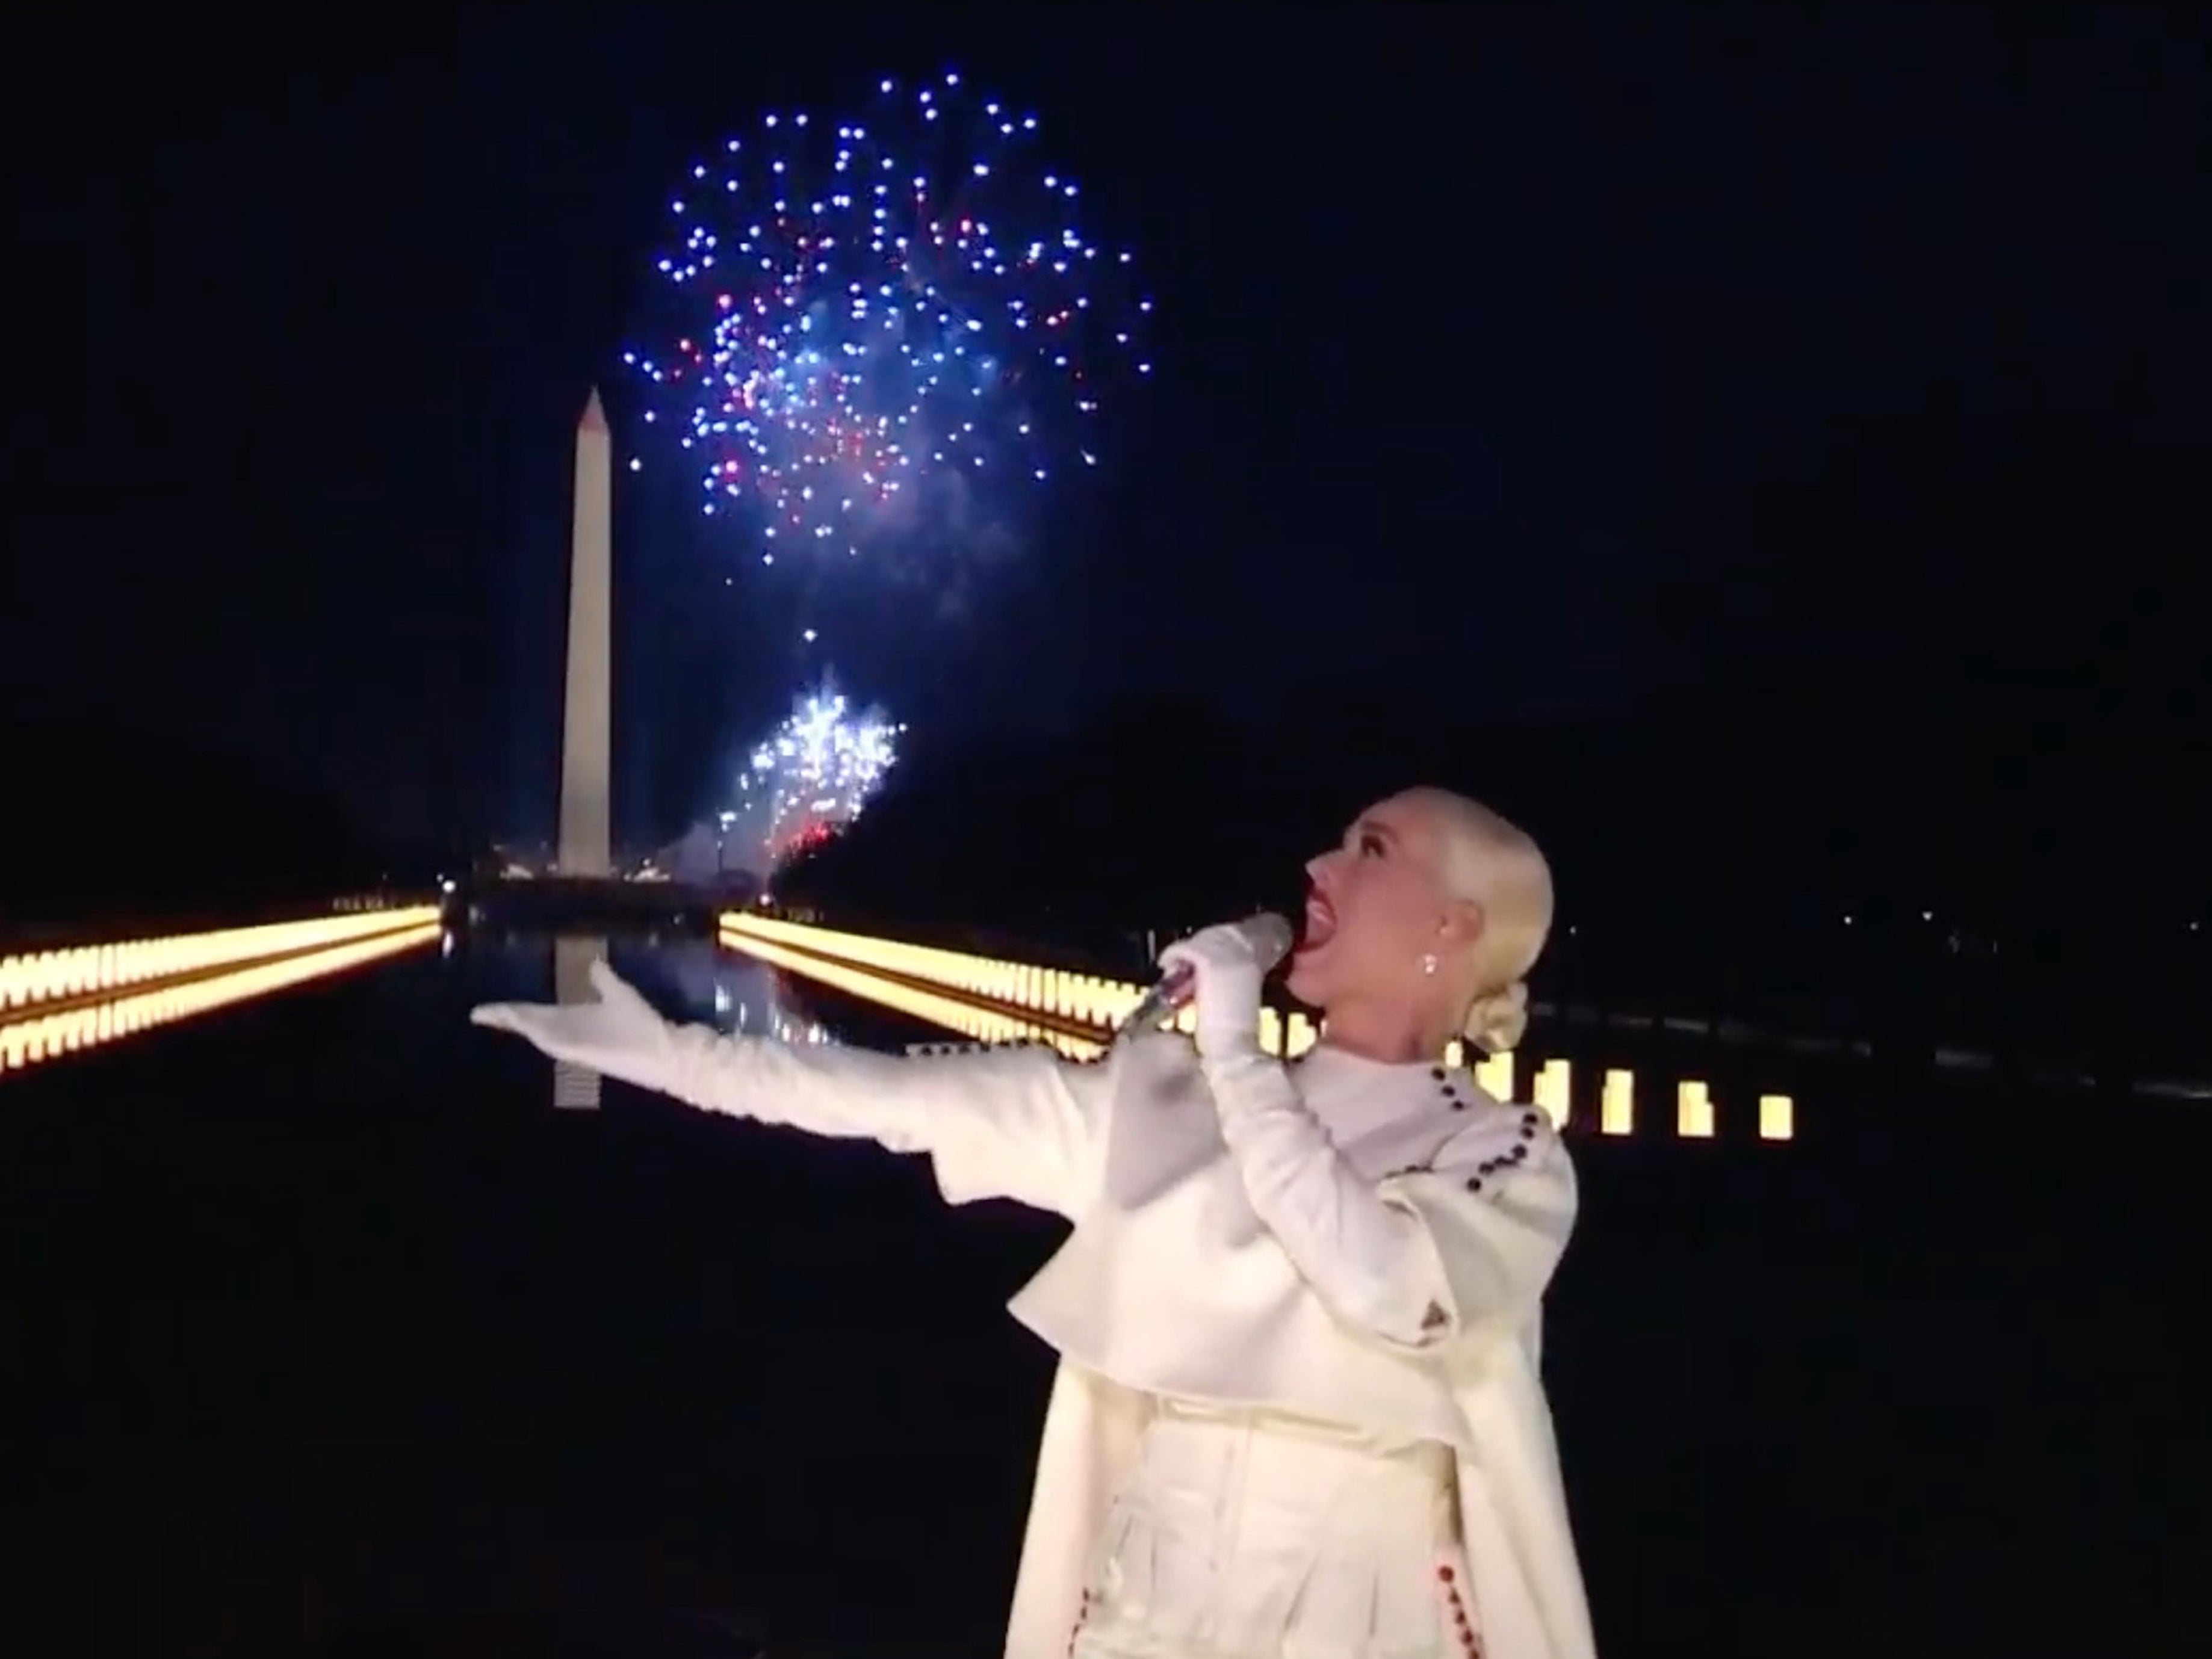 'Katy Perry came and delivered': Singer closes inauguration concert with explosive fireworks display – The Independent